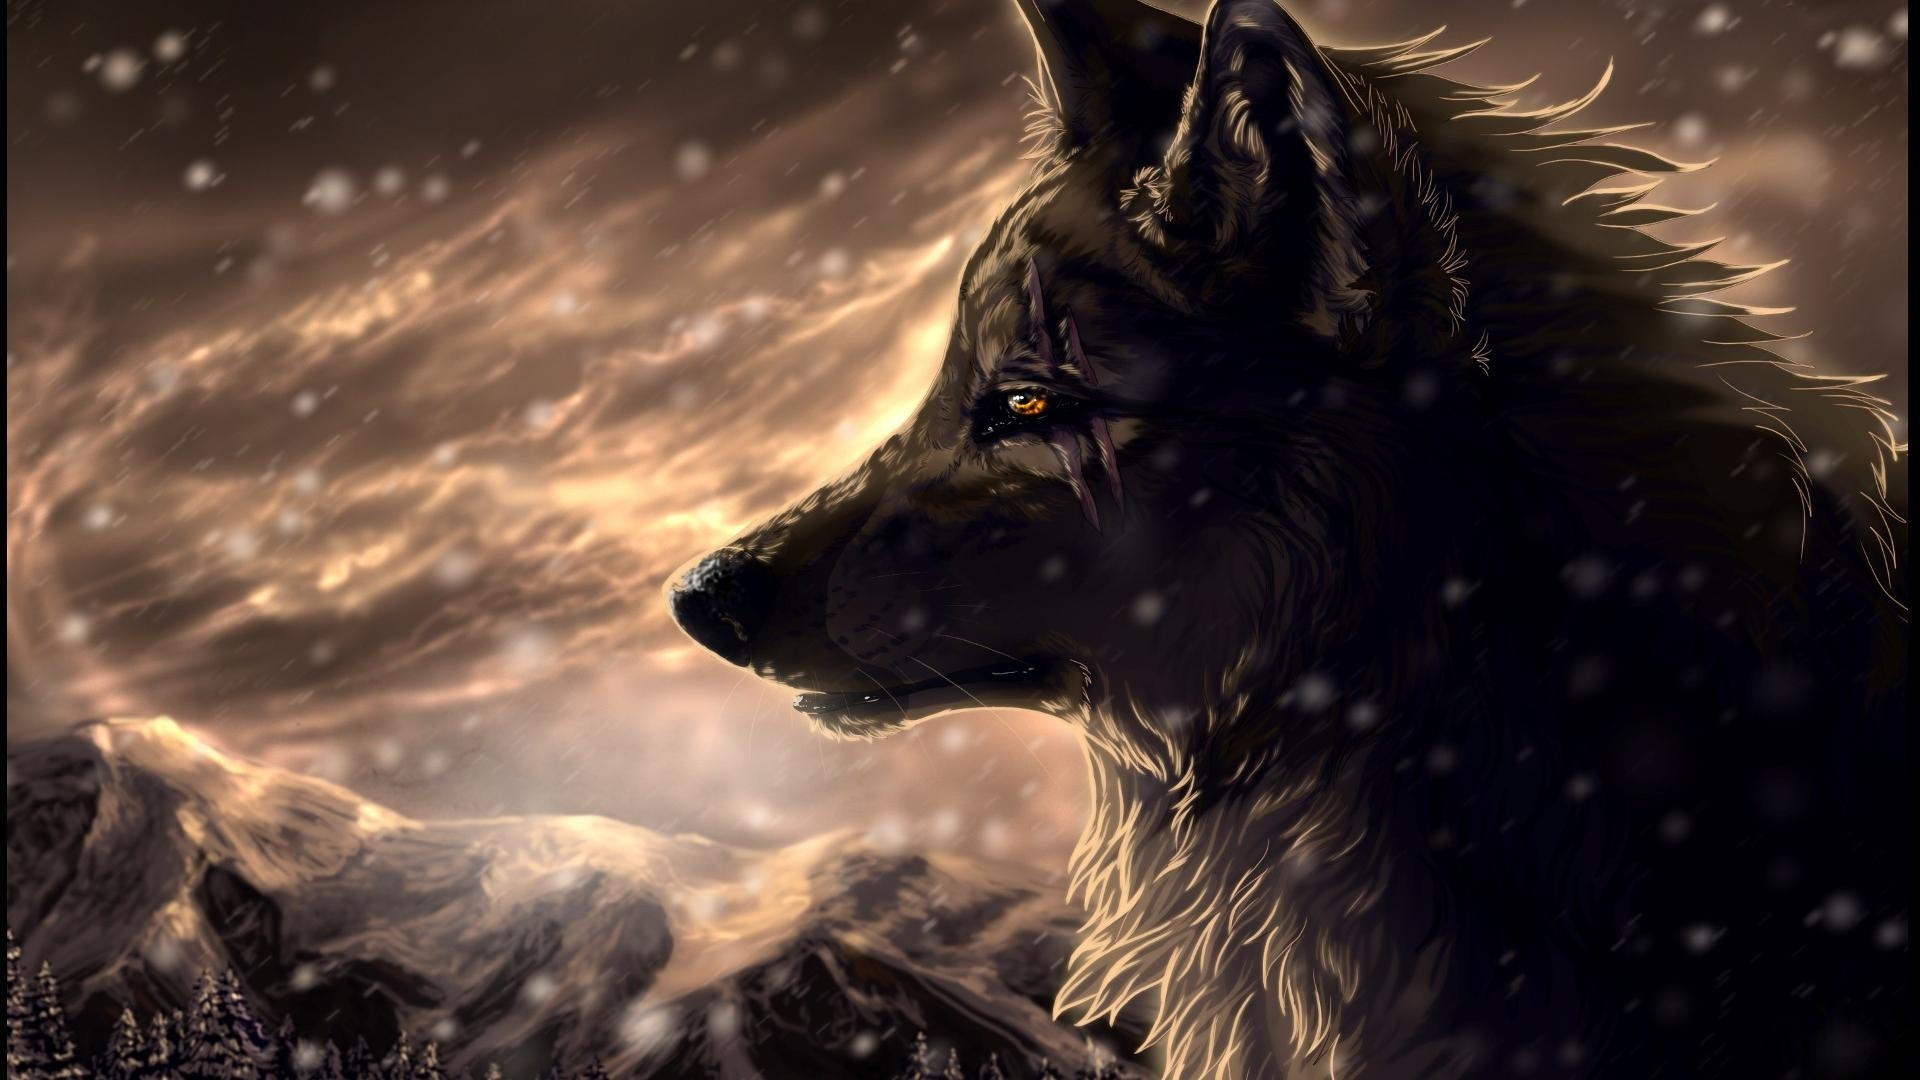 Download Wolf Download Wallpaper 1920x1080 46 Wolf Wallpapers